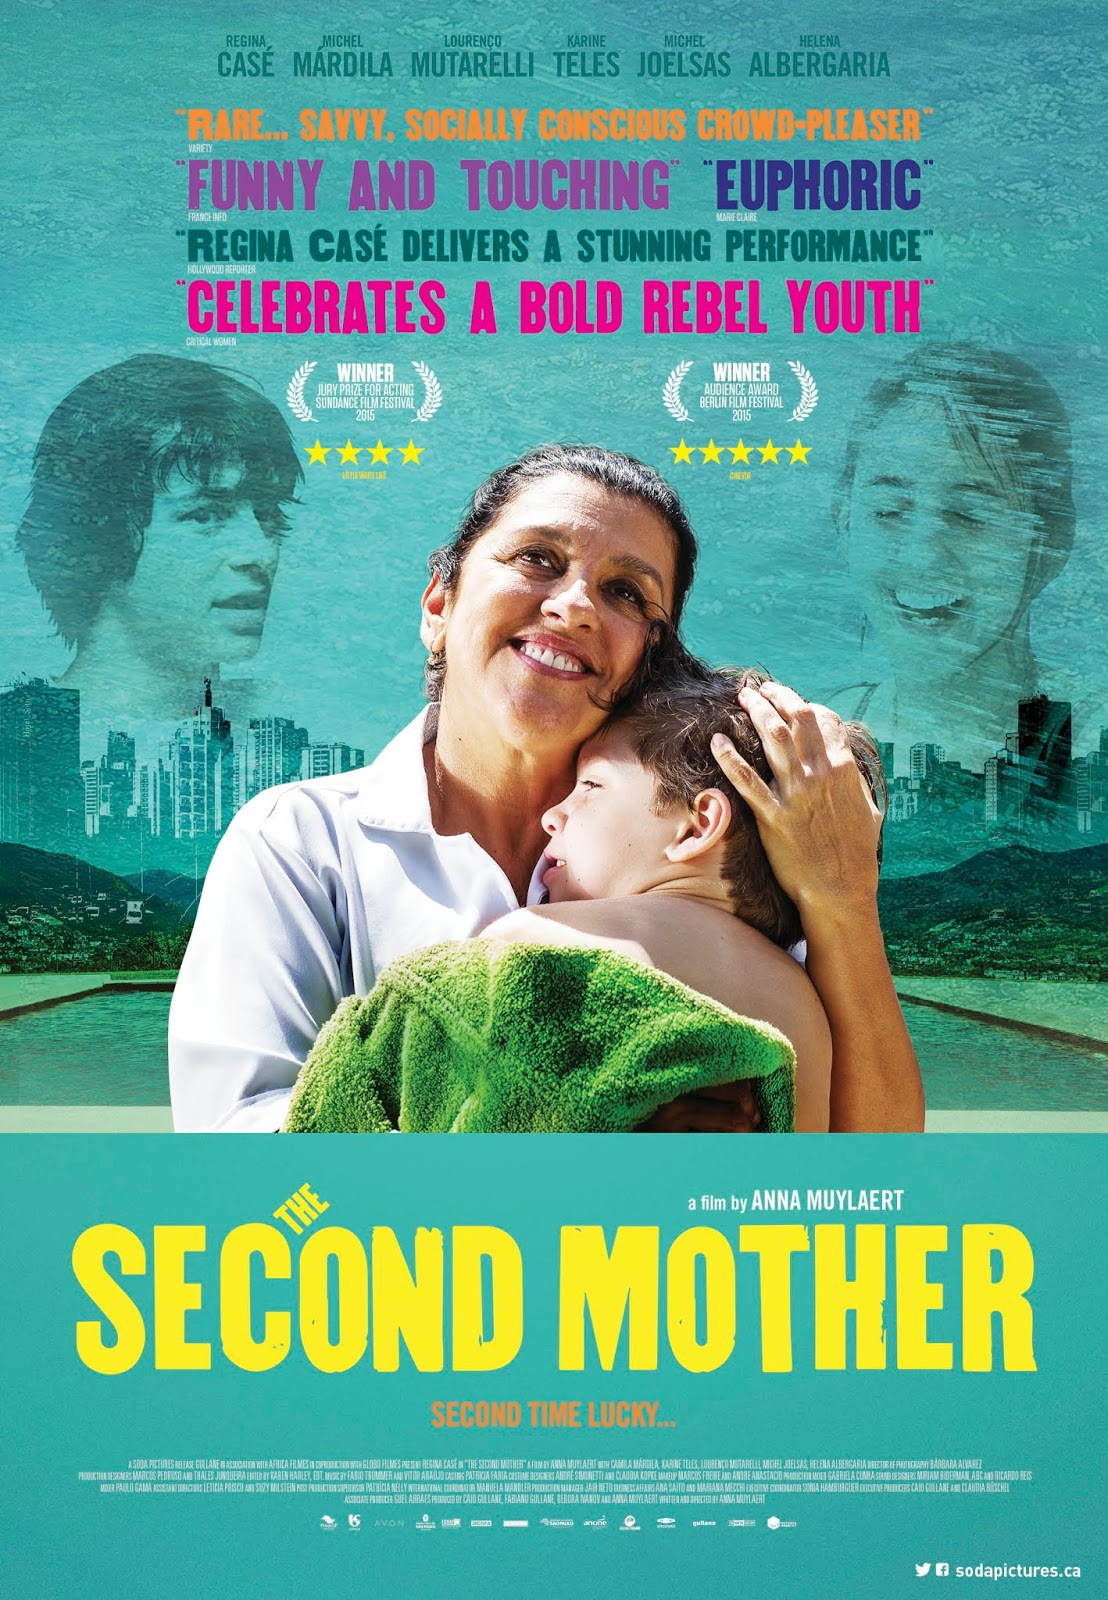 The Second_Mother_27x29_FINAL_Poster1.jpg